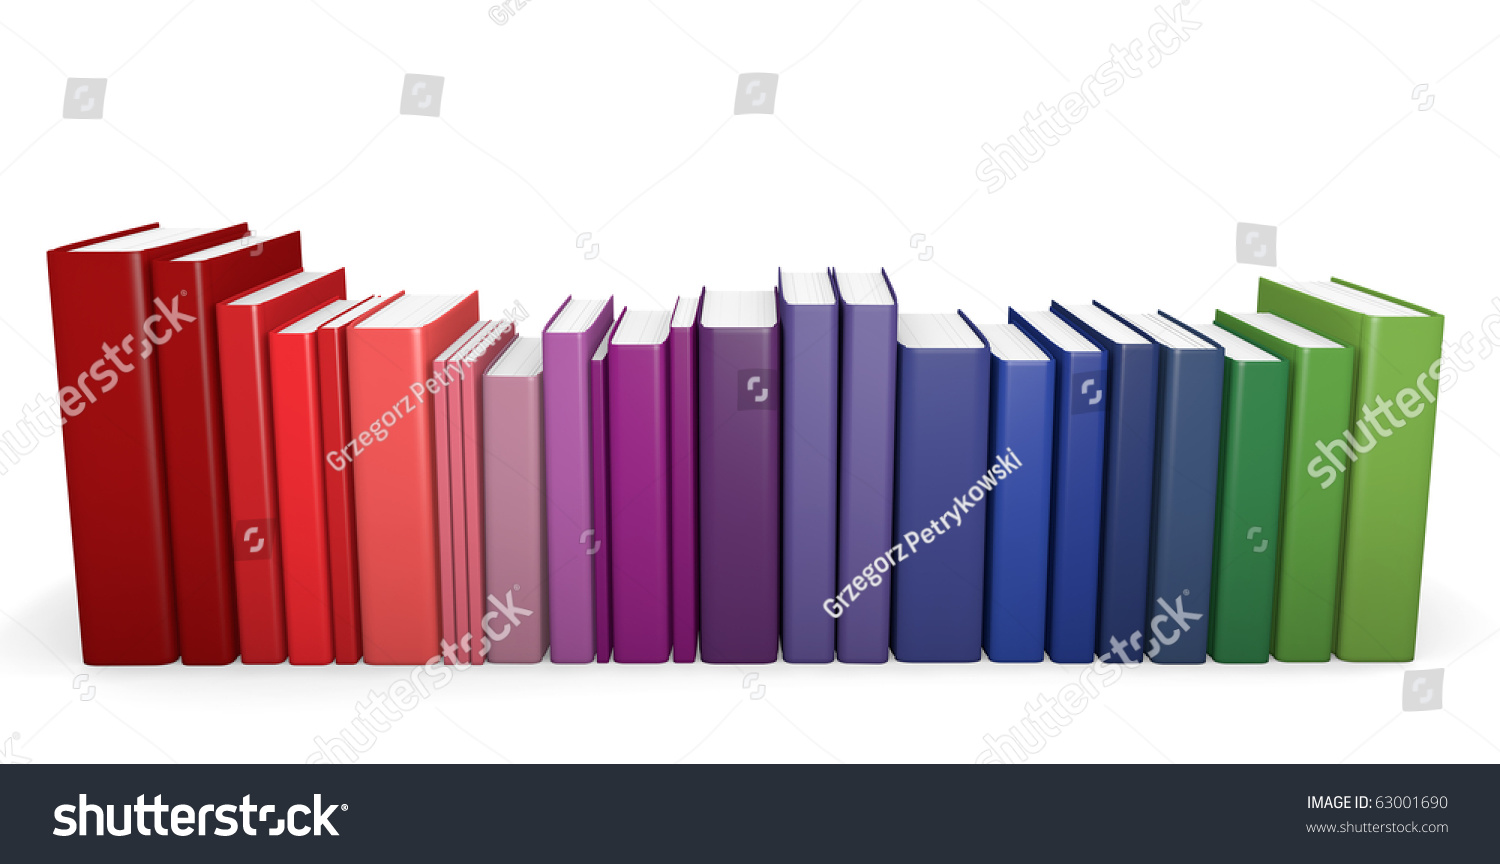 Row Of Books Vector Row Of Color Coordinated Books 3d Render Stock Photo